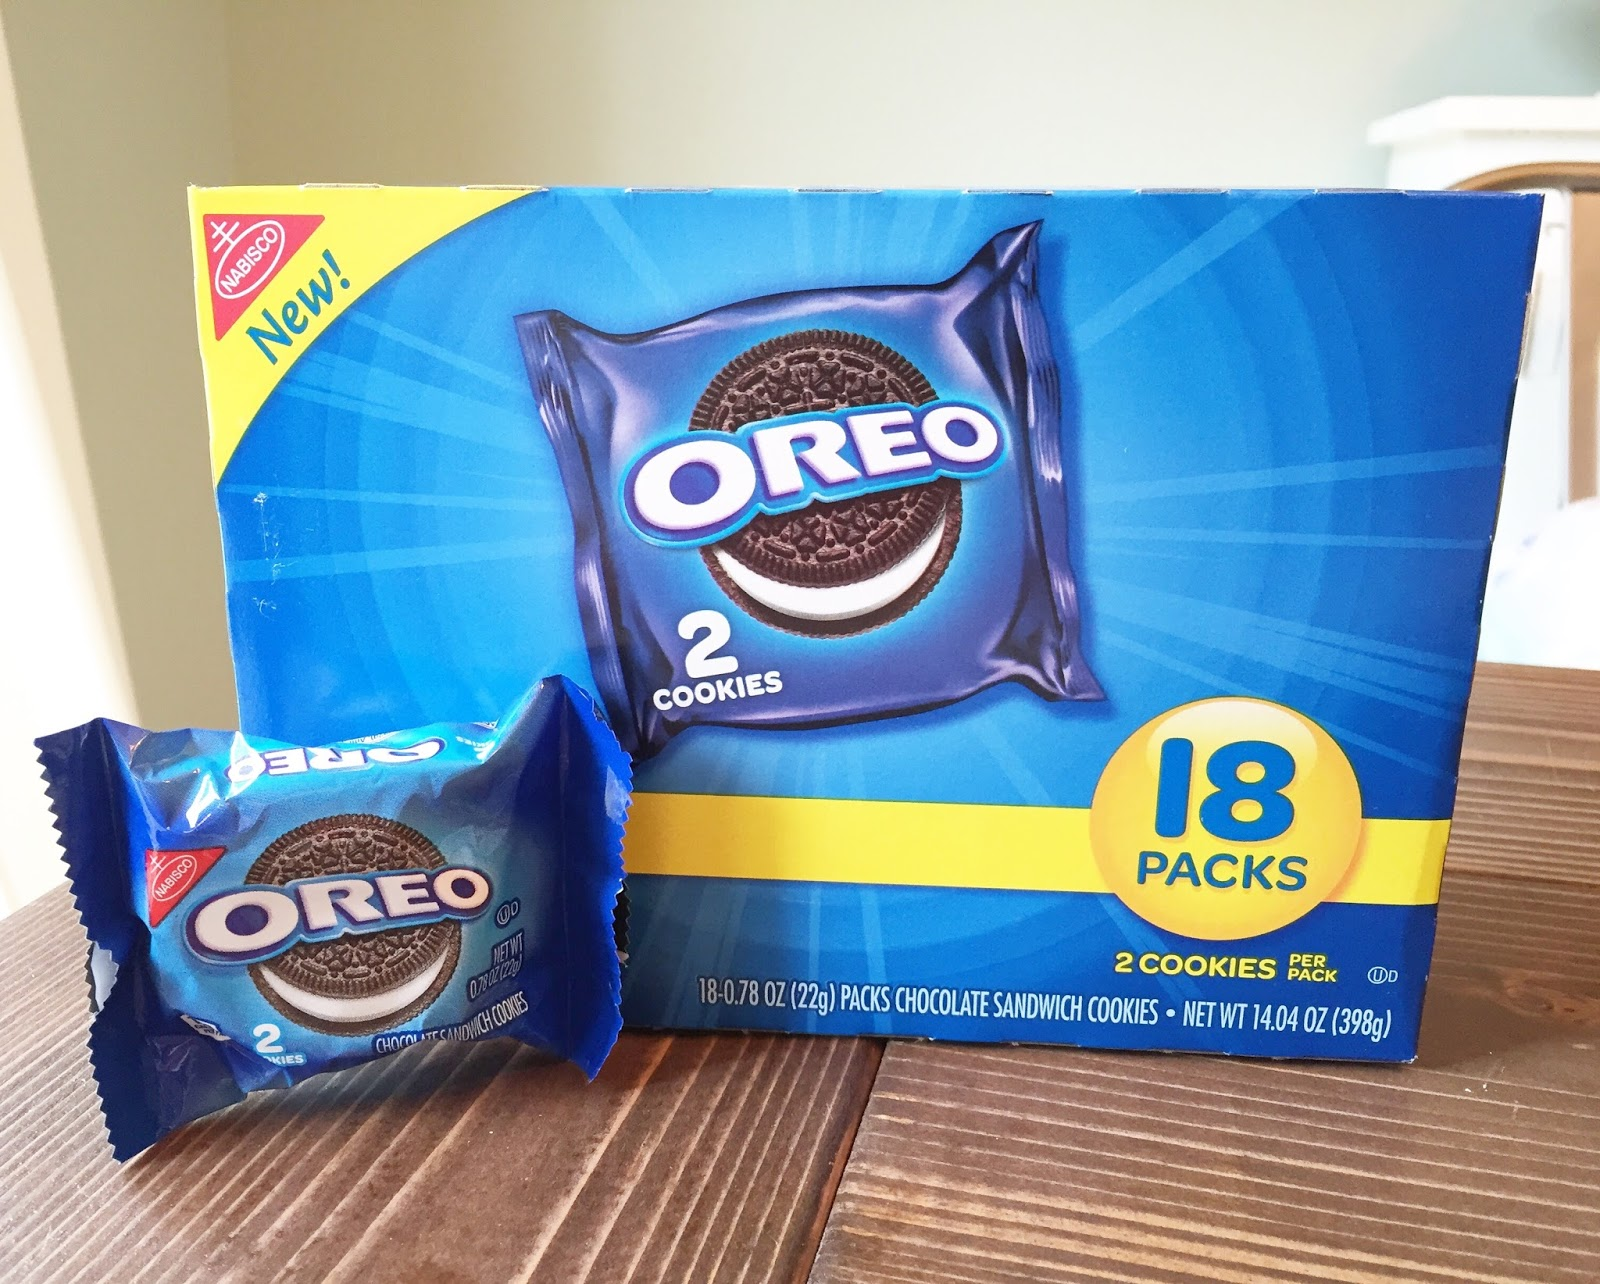 Snacks On The Go With Oreo 2-Pack